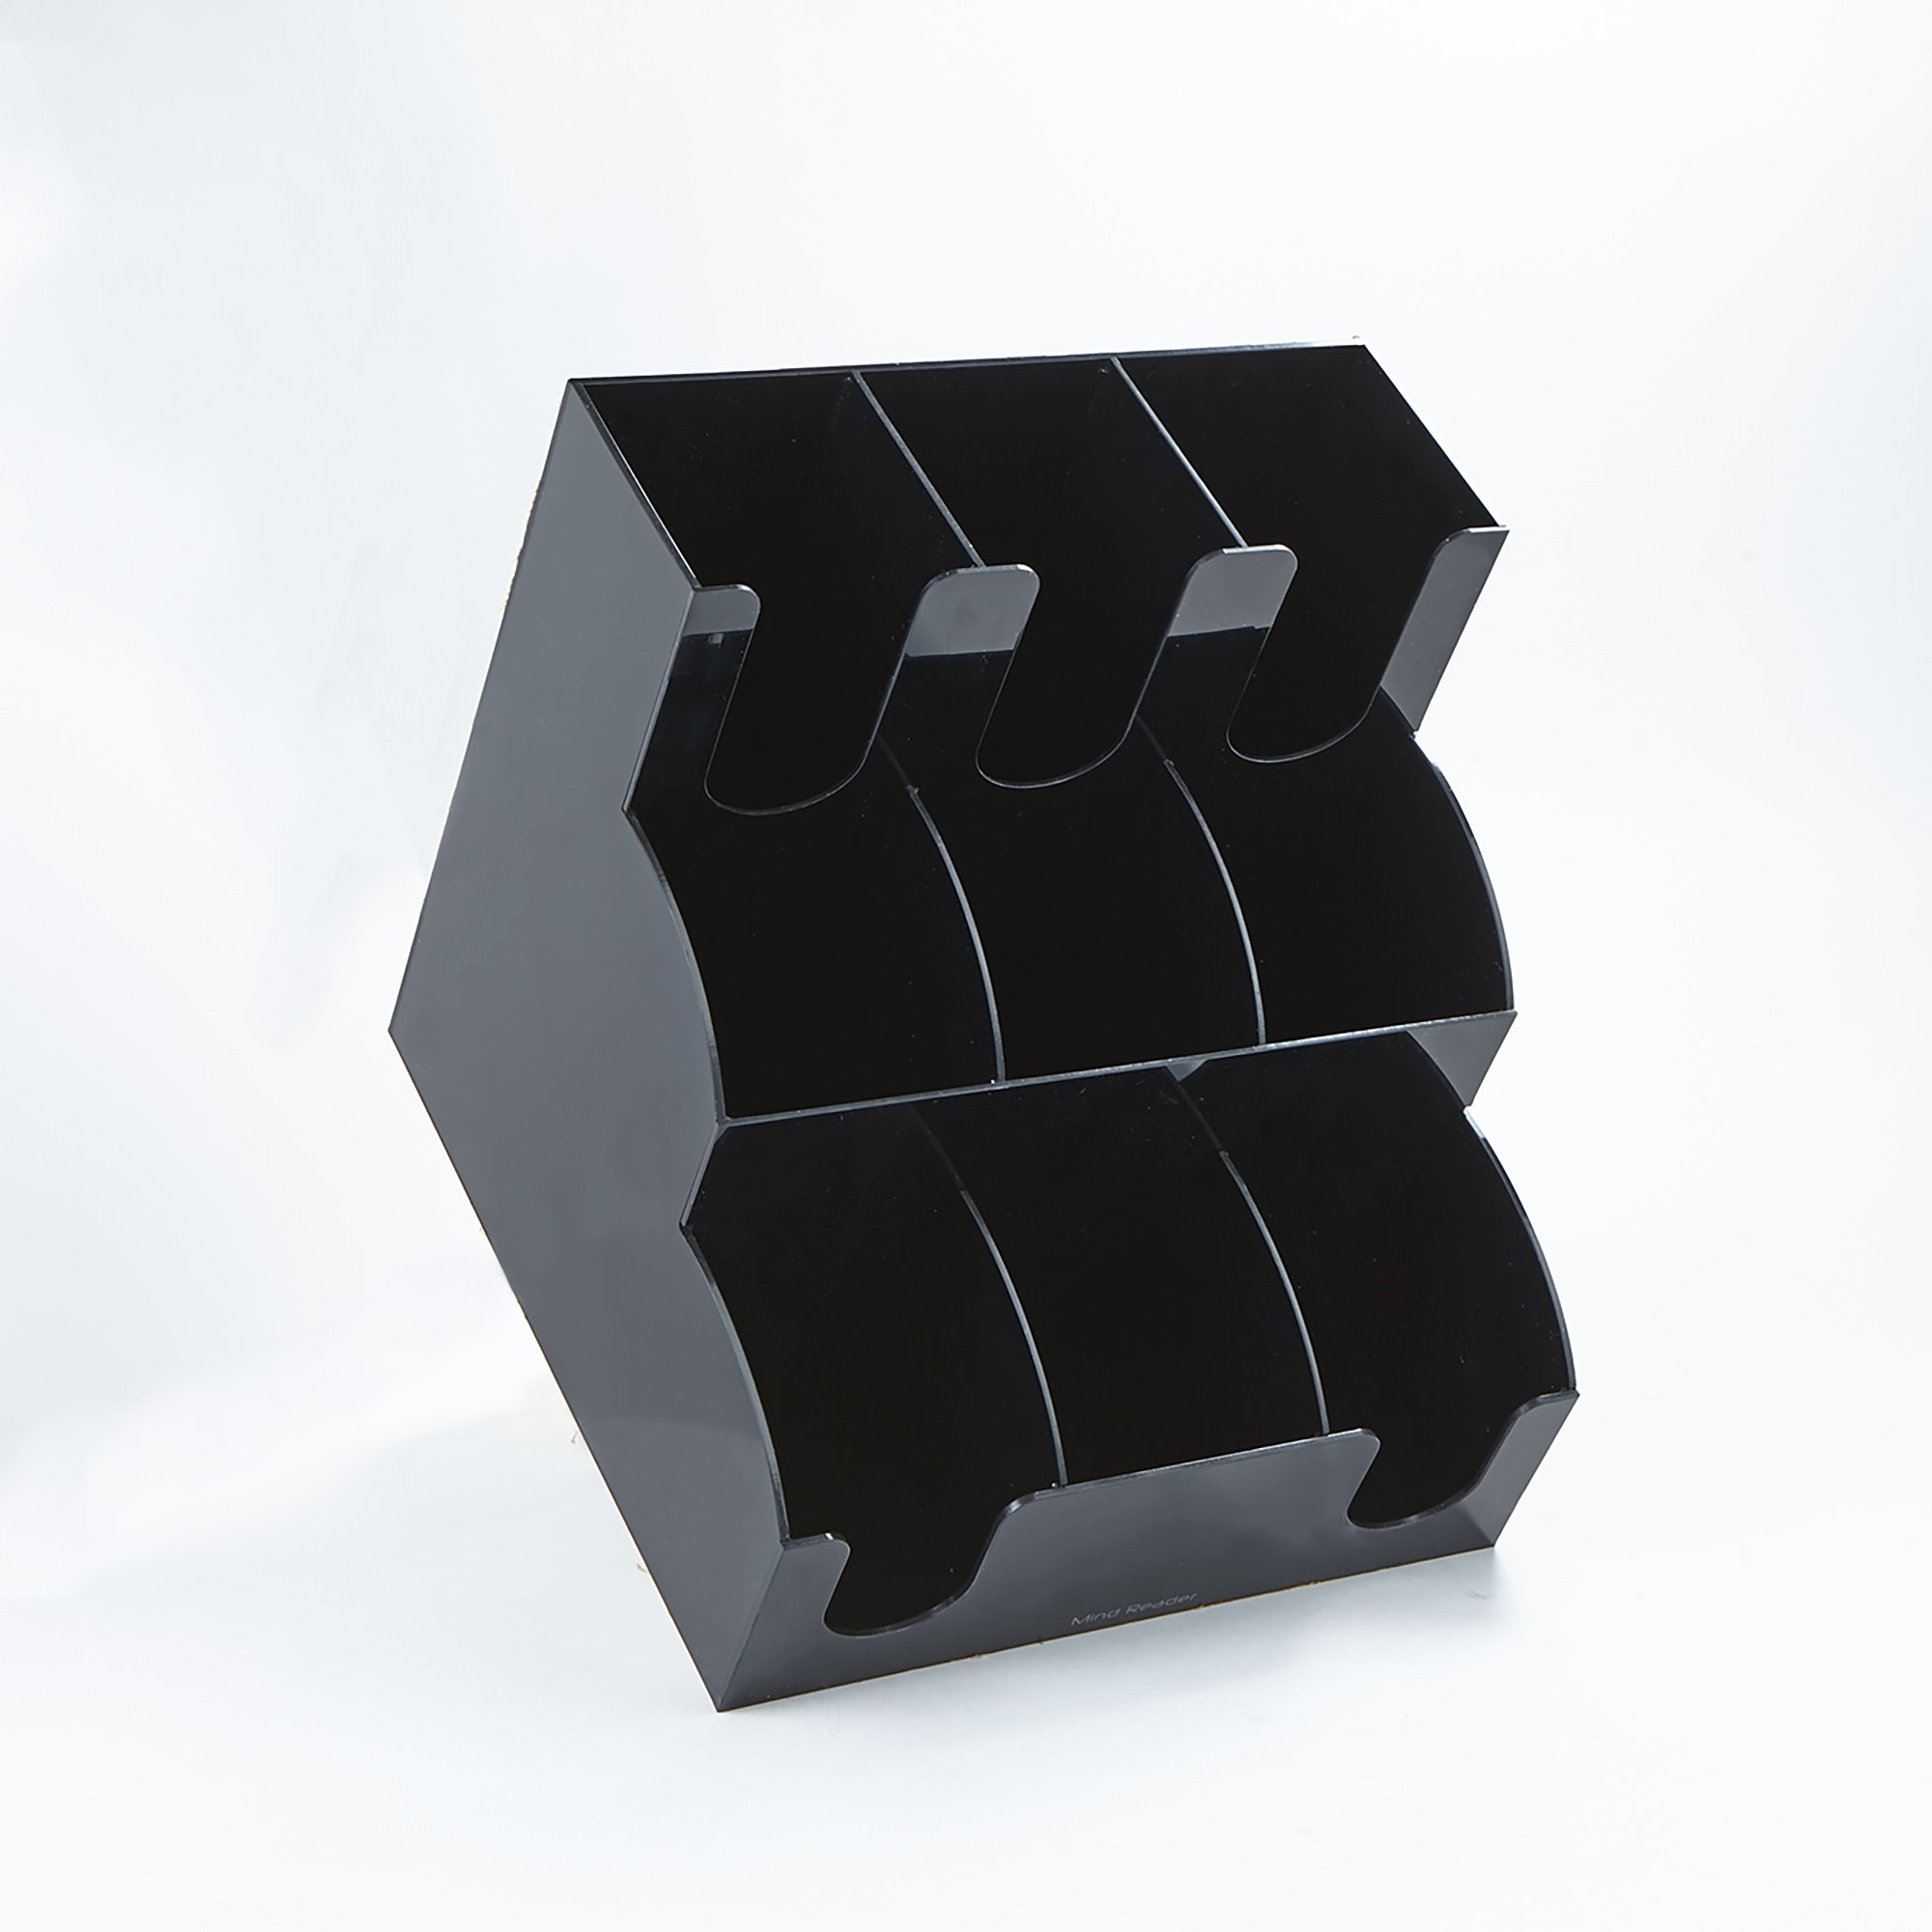 Mind Reader 9 Compartment Coffee Condiment and Accessories Organizer, Black by Mind Reader (Image #3)